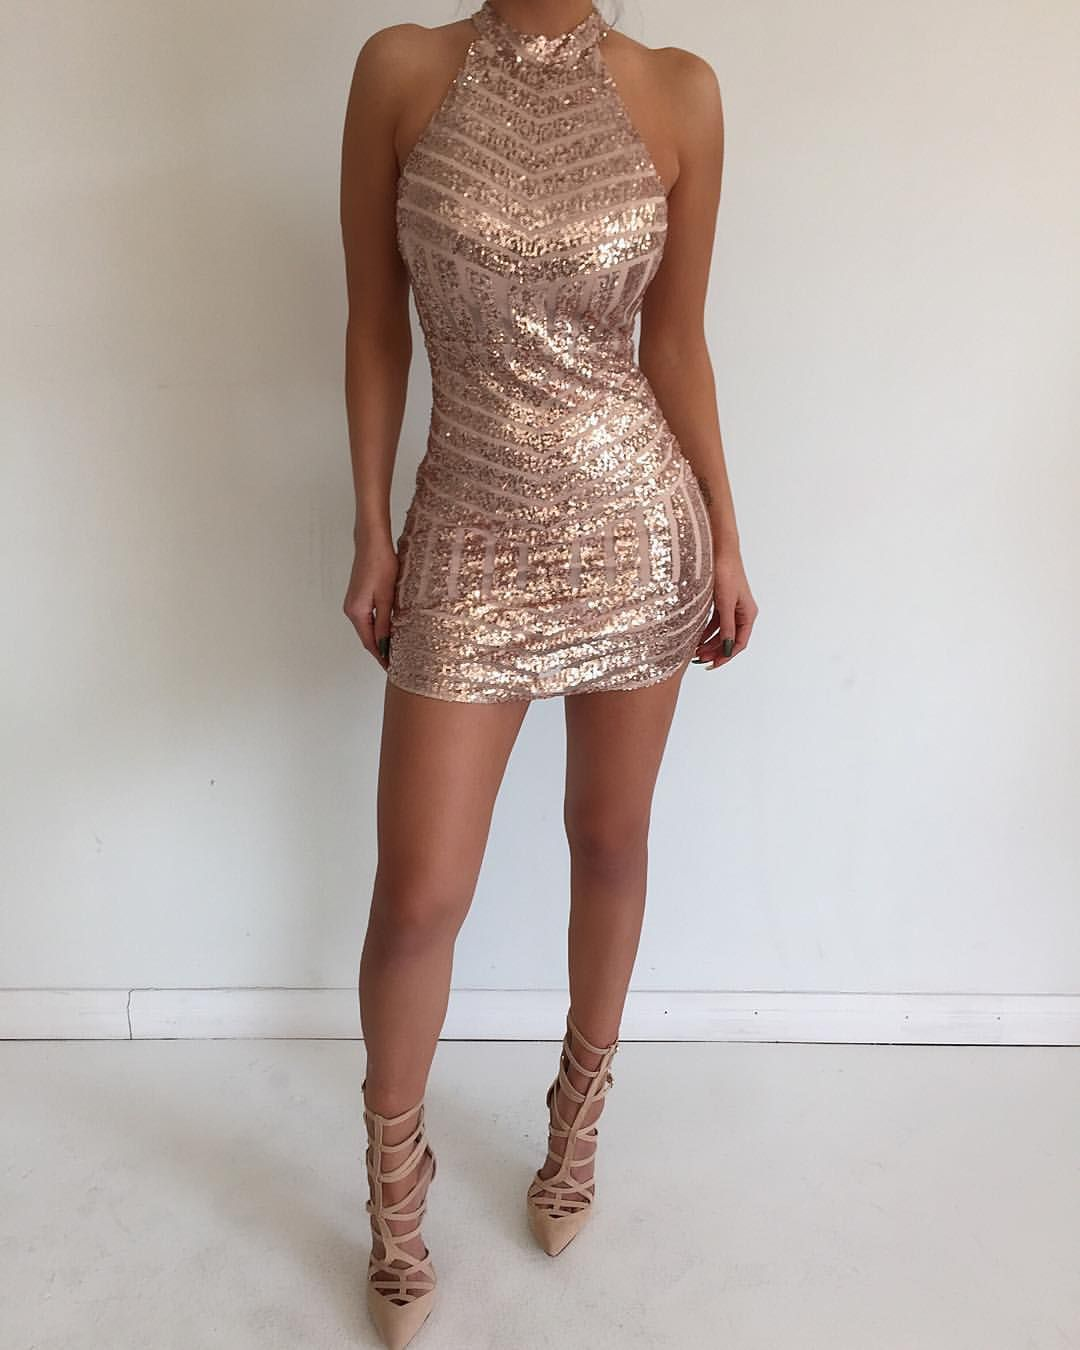 Pin by GlamFashionLuxe on F a s h i o n | Pinterest | Hoco dresses ...